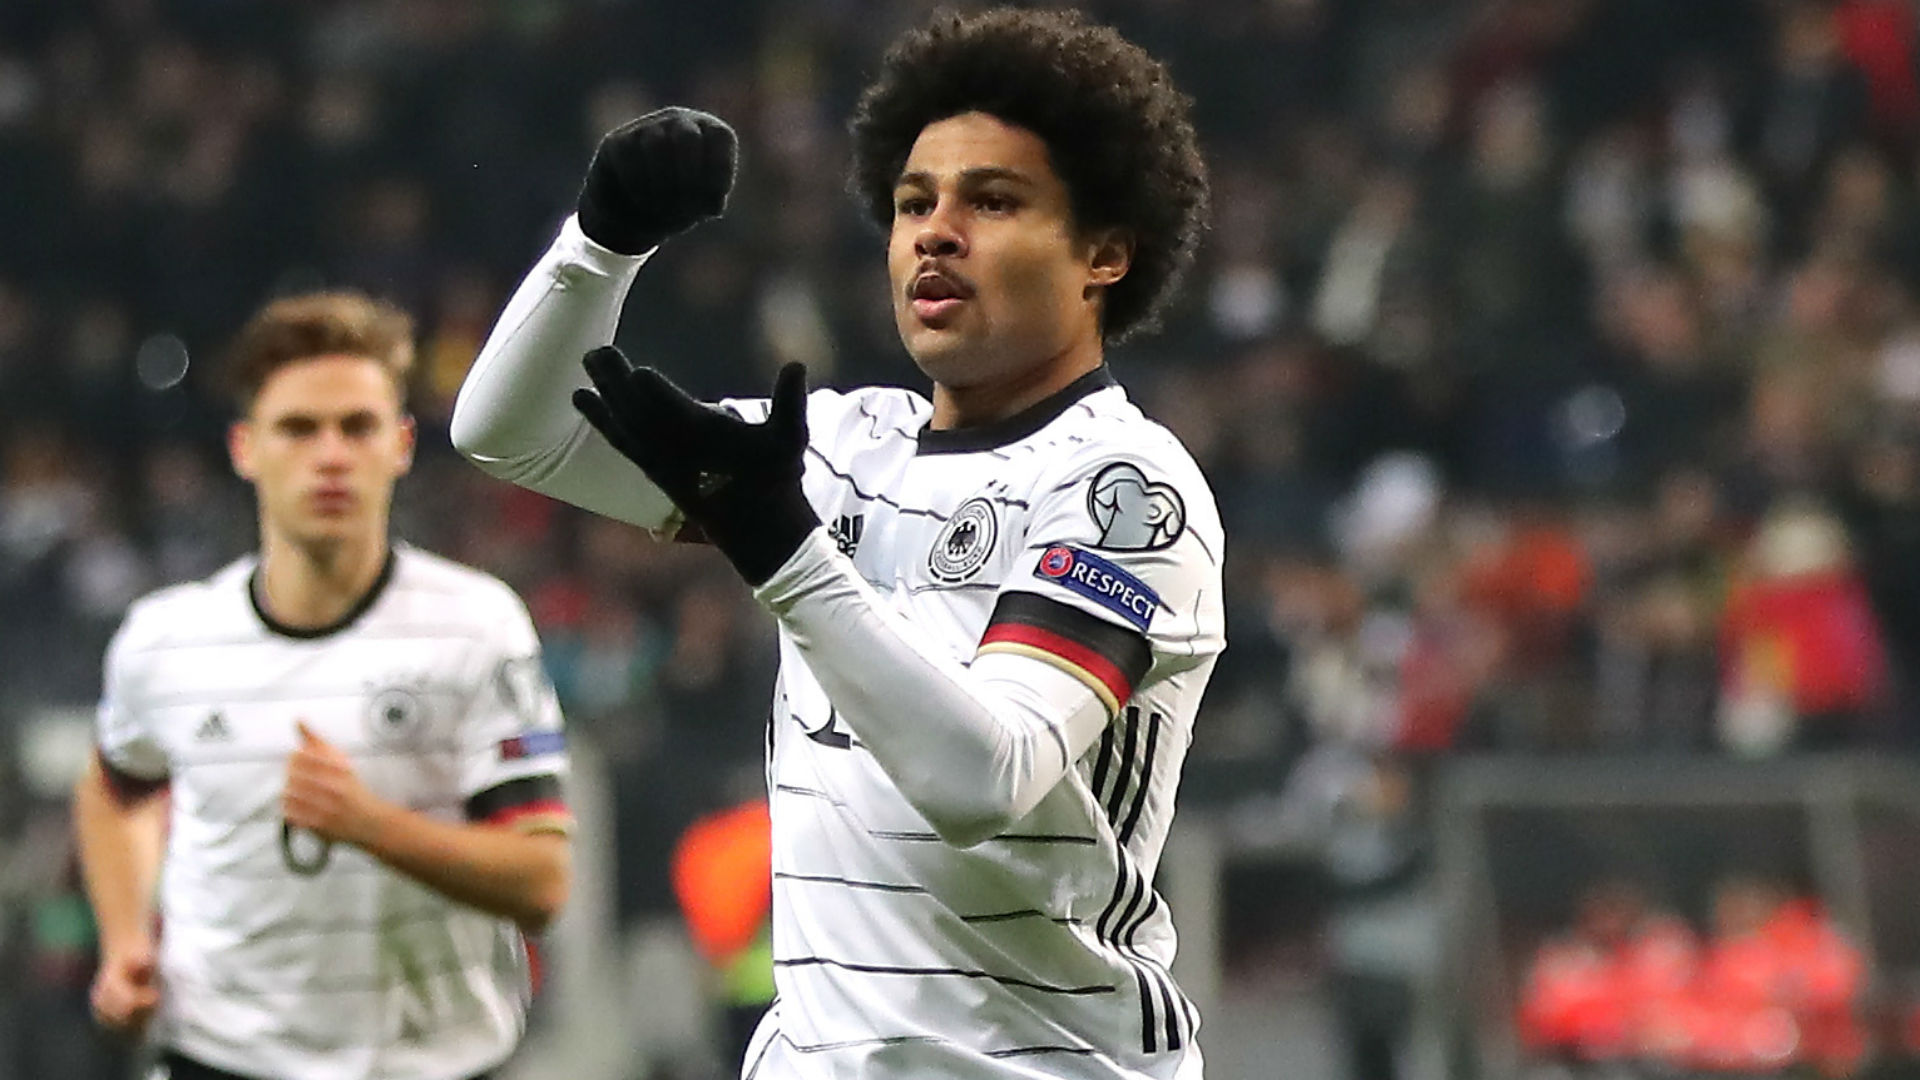 Germany 6-1 Northern Ireland: Gnabry scores stunning hat-trick